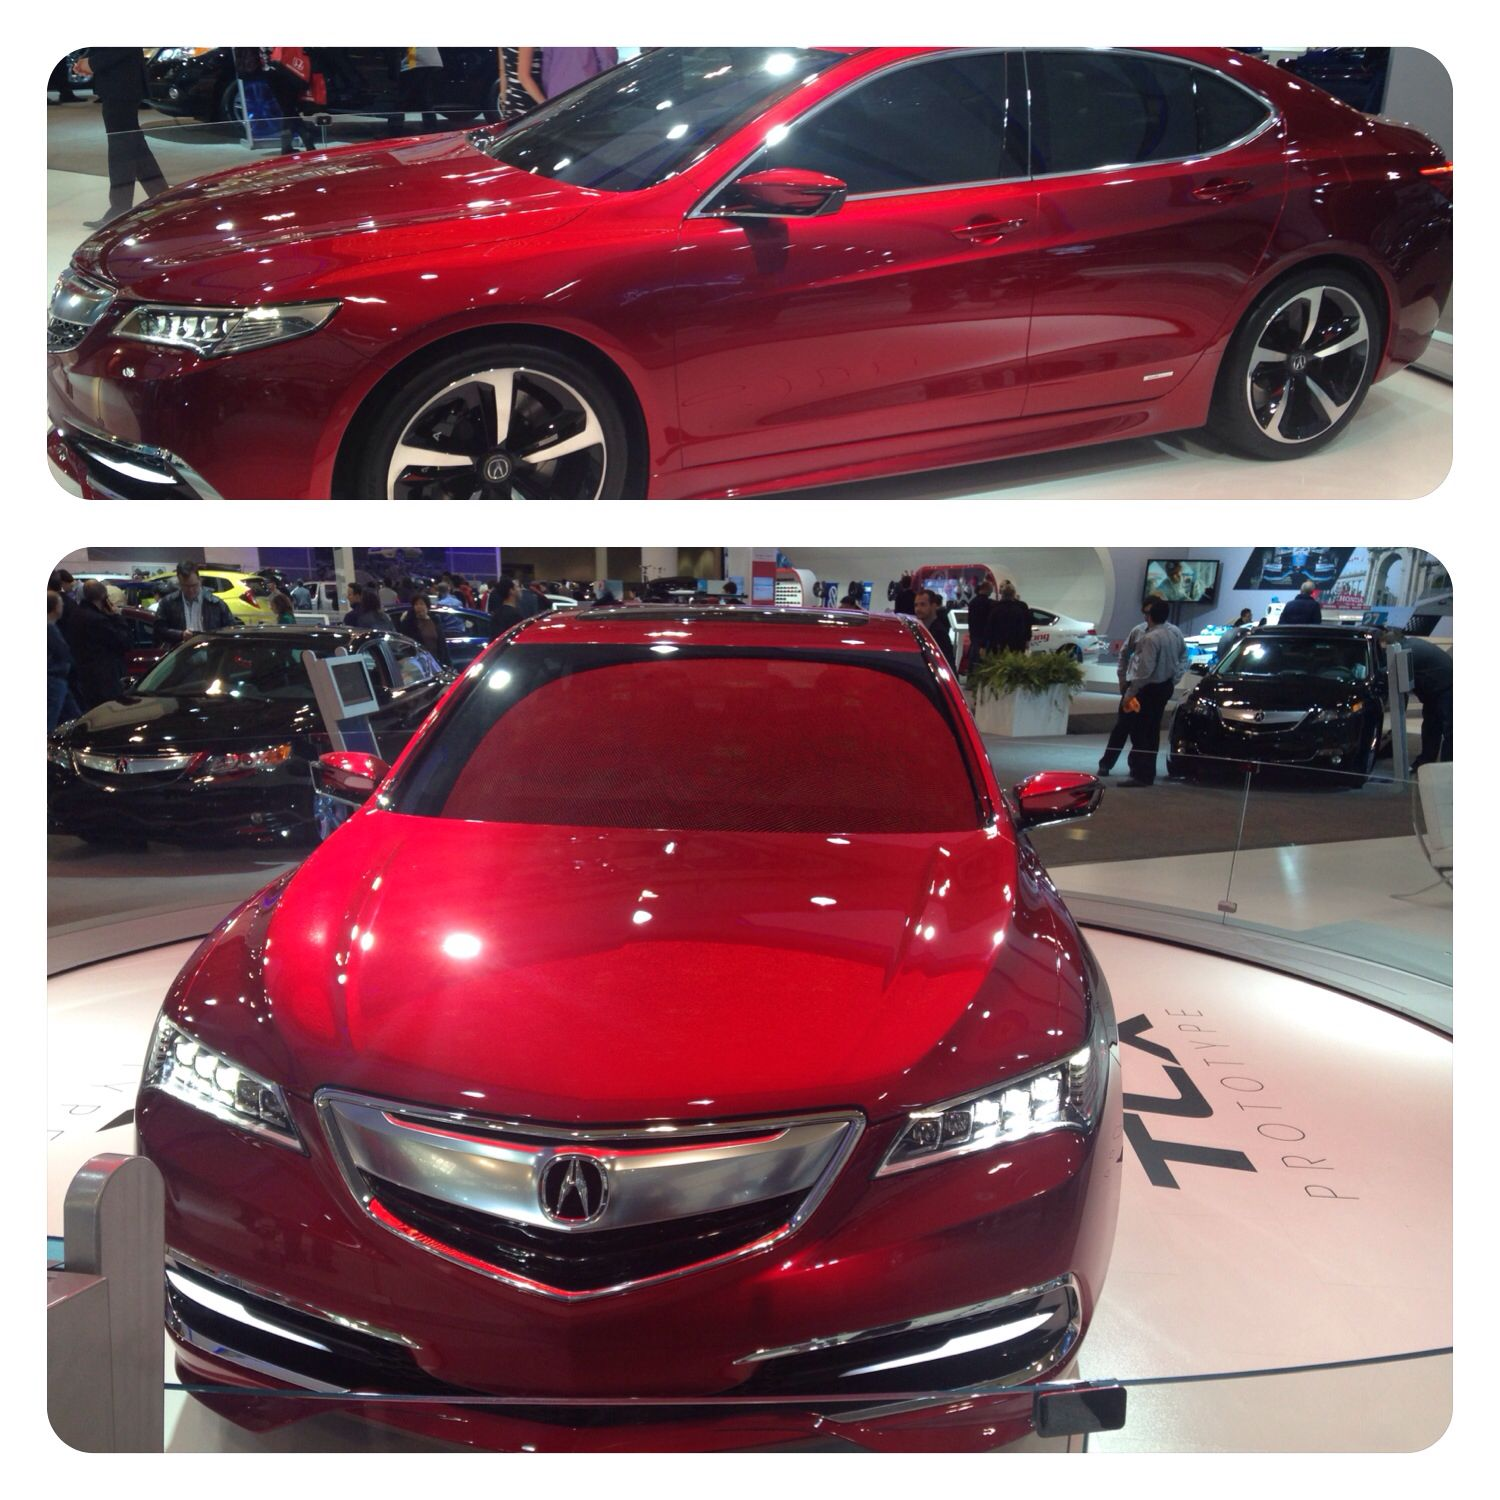 2015 Acura TLX 2014 Toronto Autoshow (With Images)